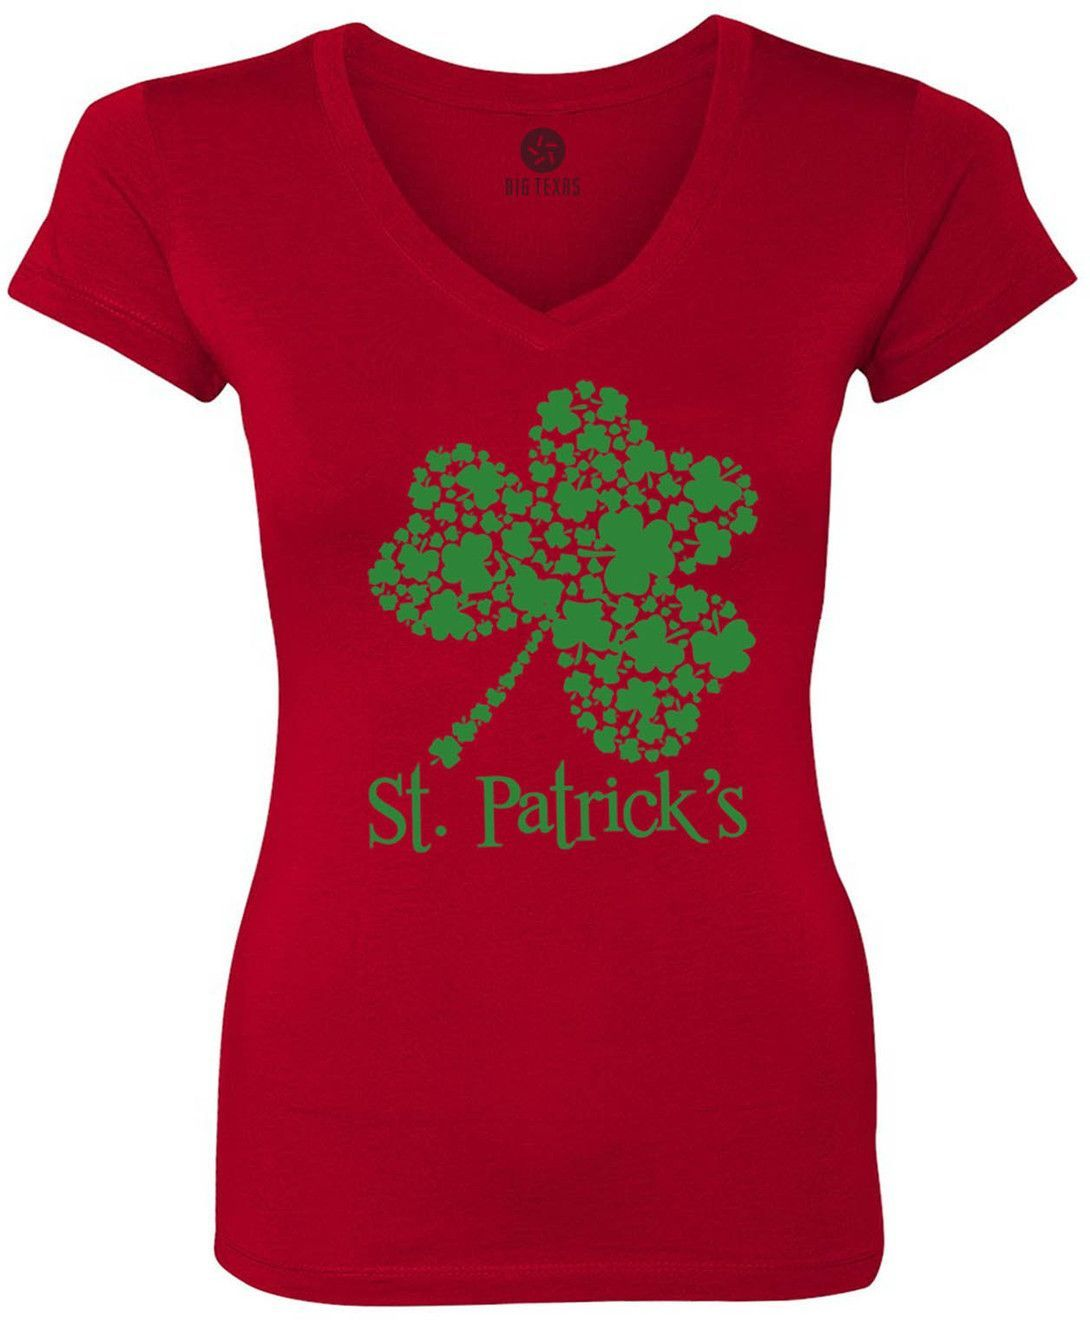 St. Patricks Day Clover (Green) Women's Short-Sleeve V-Neck T-Shirt